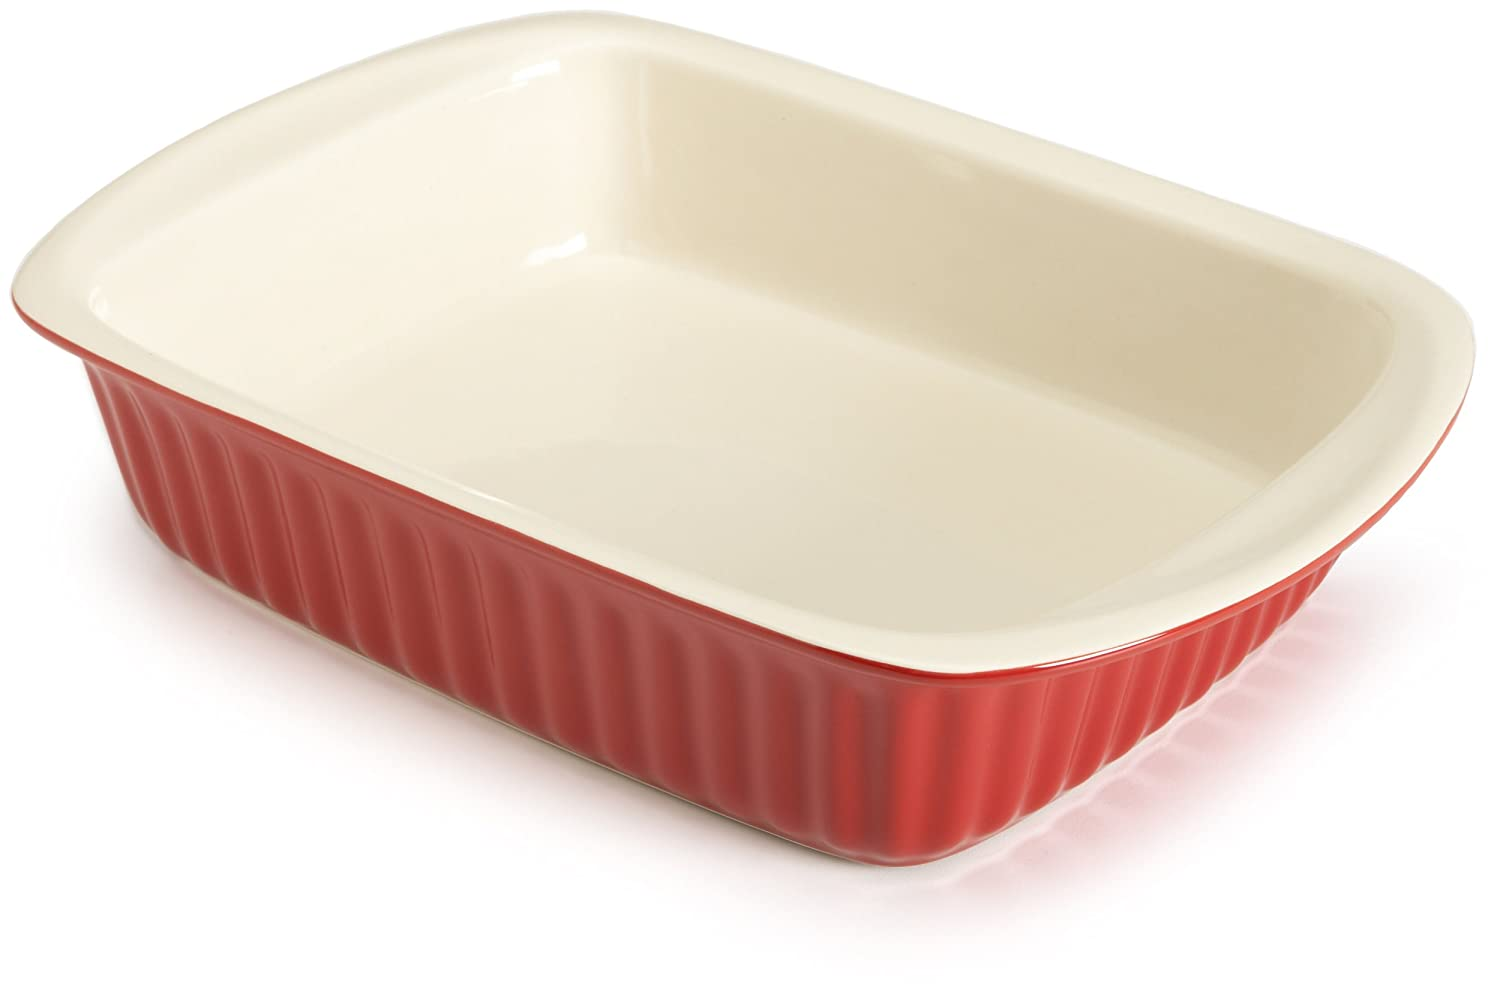 Good Cook 2.5 Quart Rectangle Ceramic Dish, Red